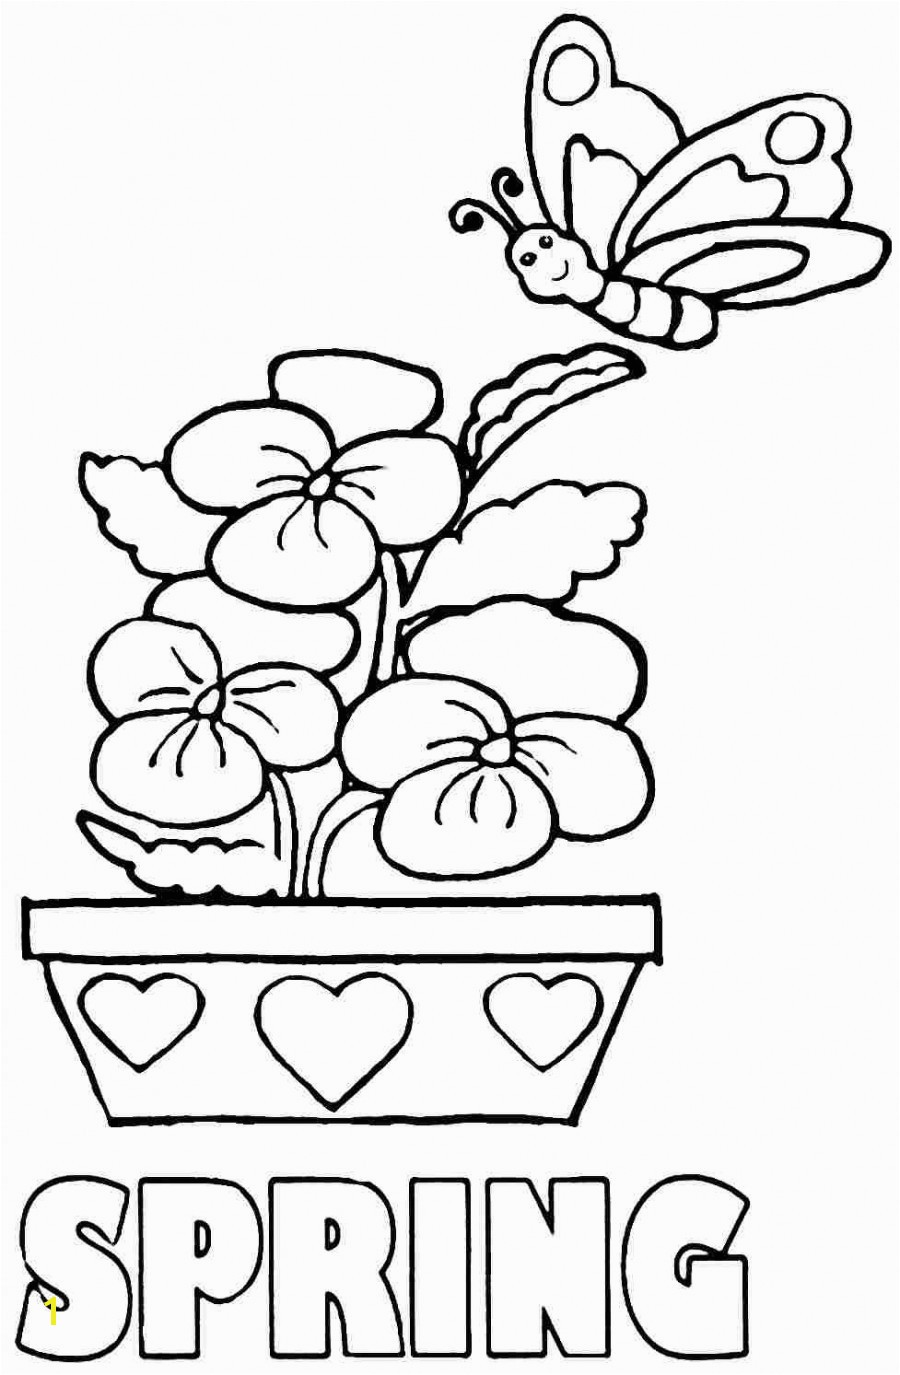 Simple Color Sheets For Spring Sampler Growth Coloring Pages Preschoolers